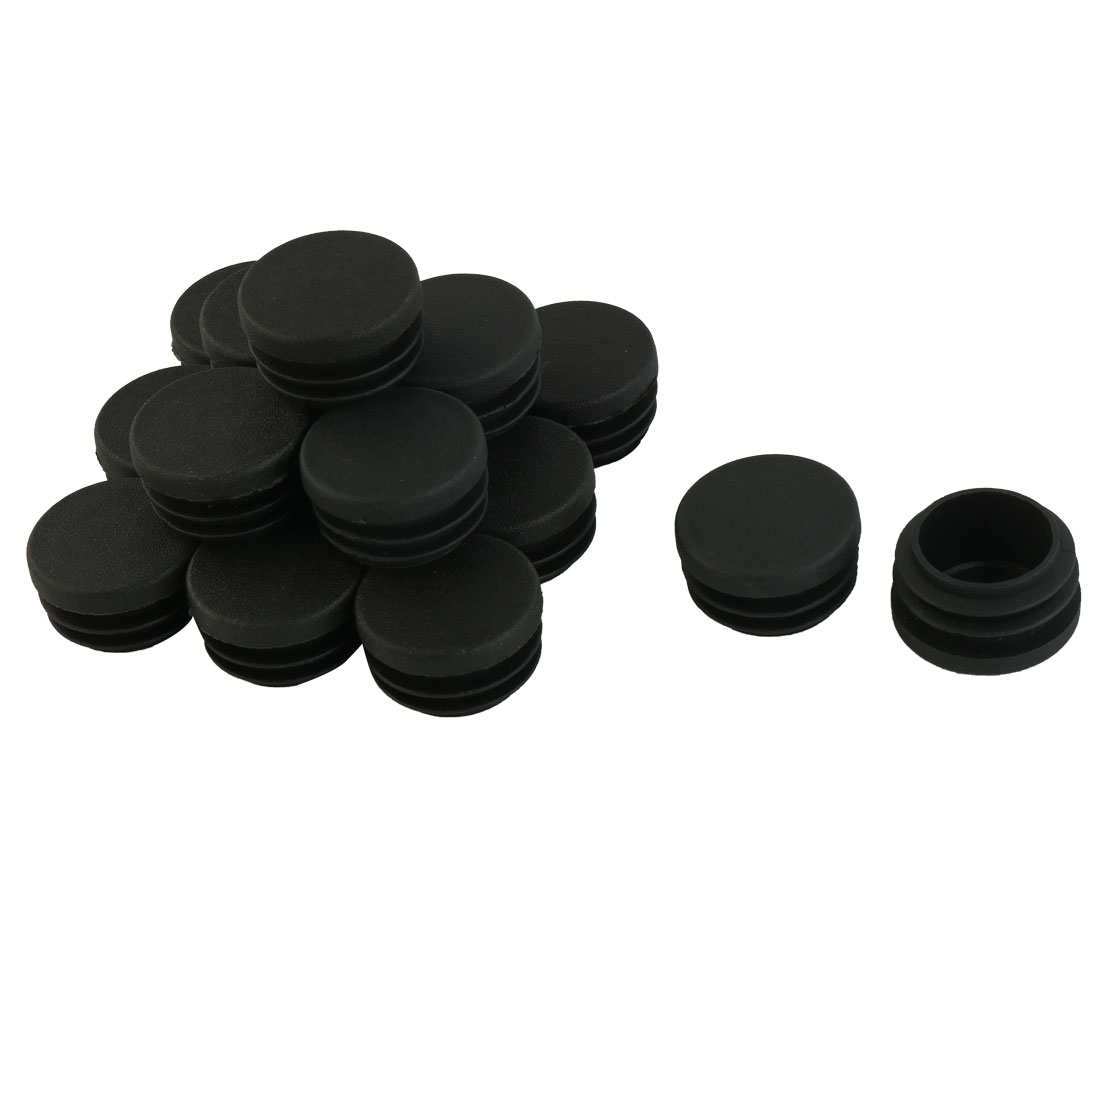 Furniture Cabinet Table Legs Plastic Round Tube Insert Caps Black 30mm Dia 16pcs